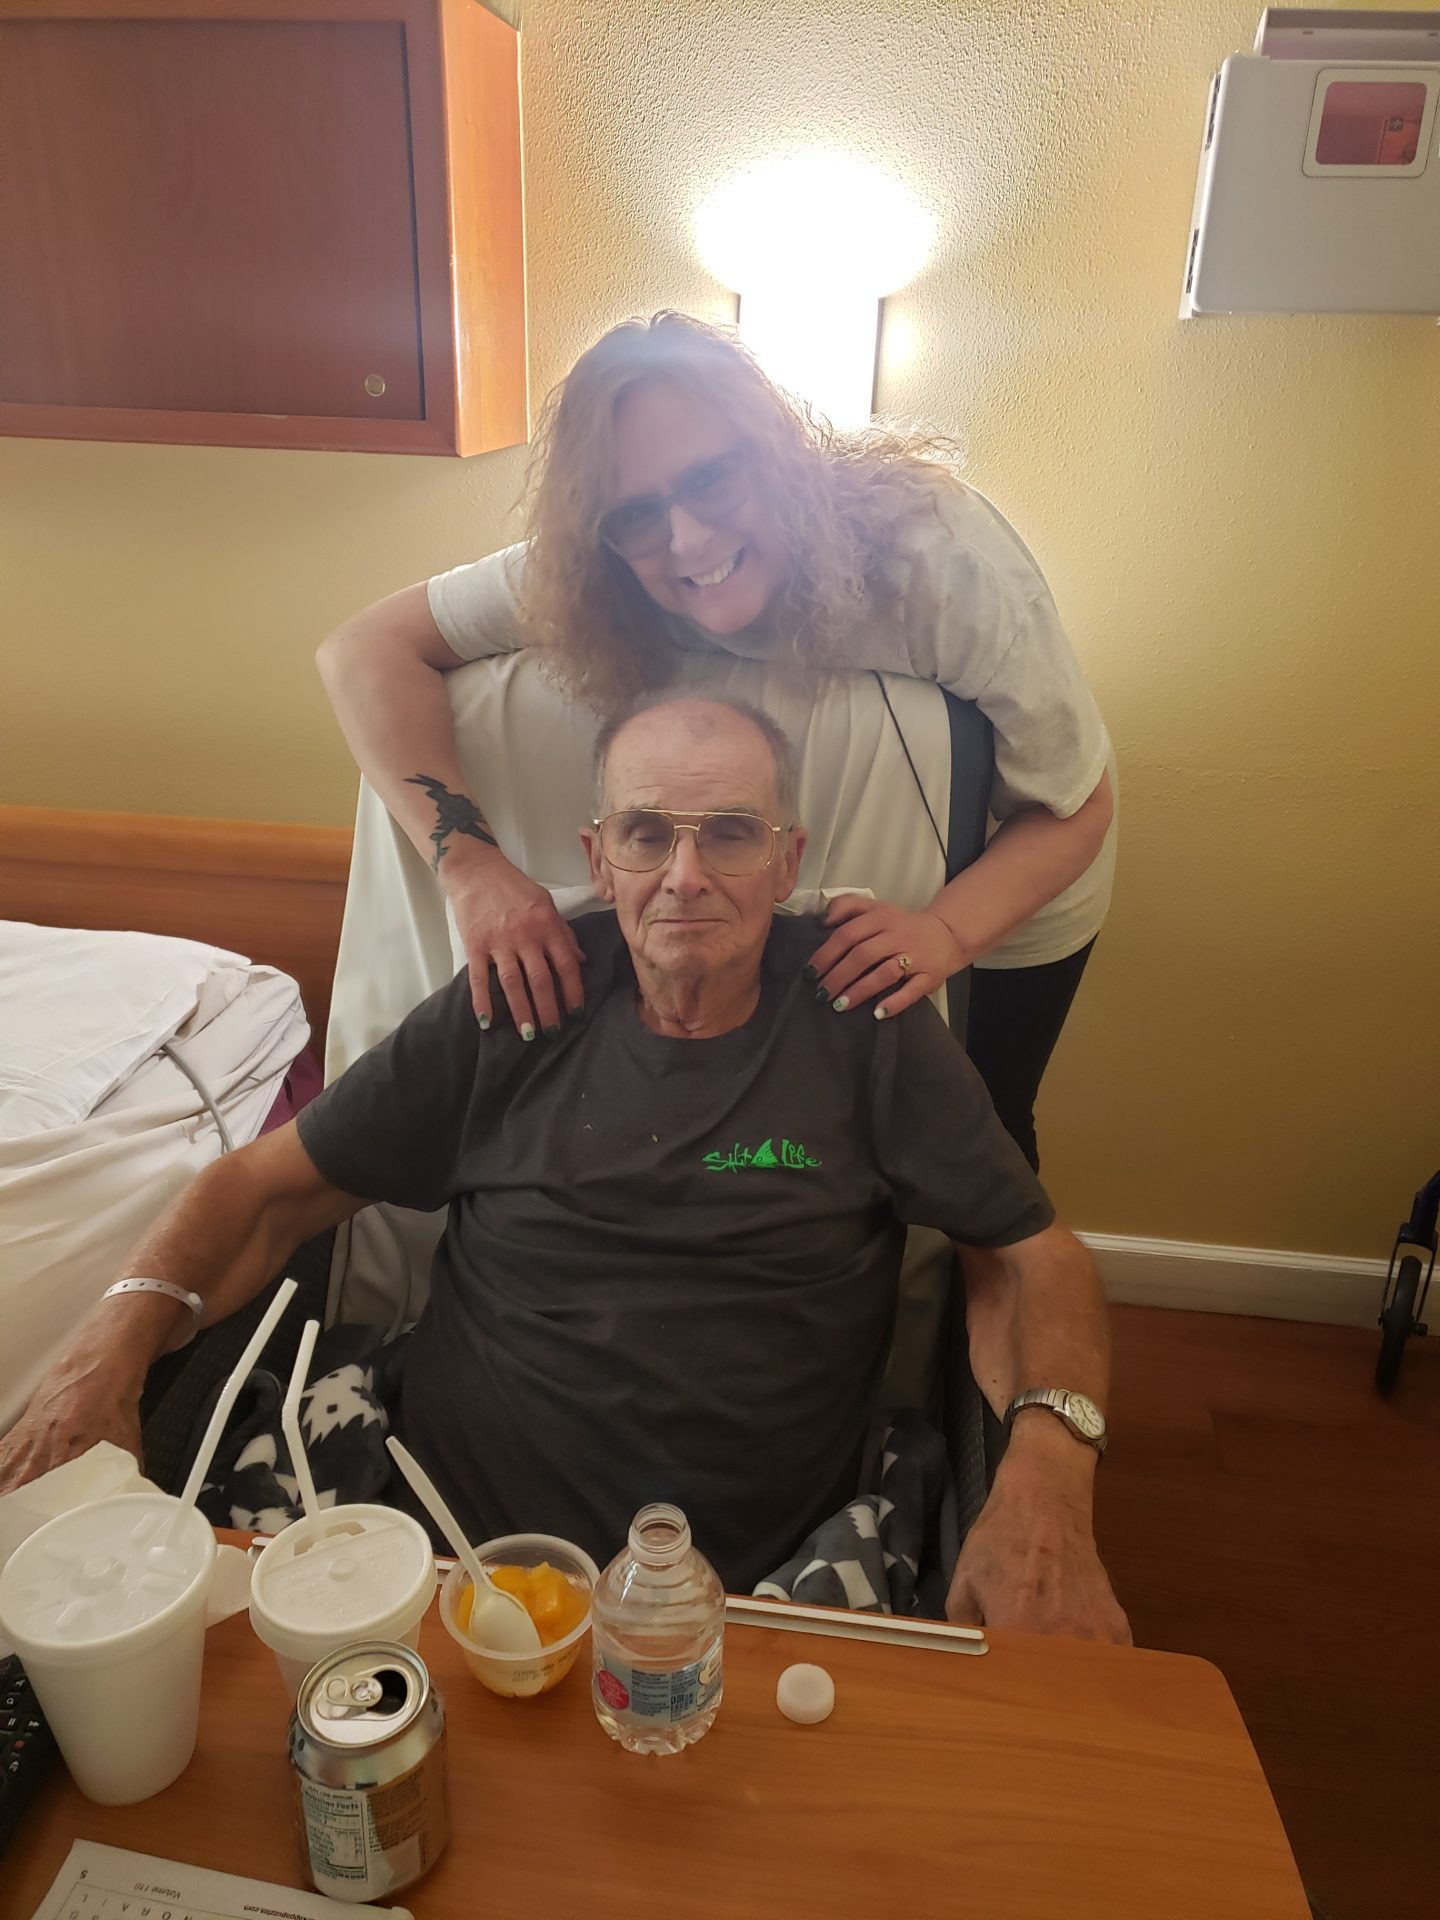 Daddy and I forever in my heart, I love you, intil we see each other again!